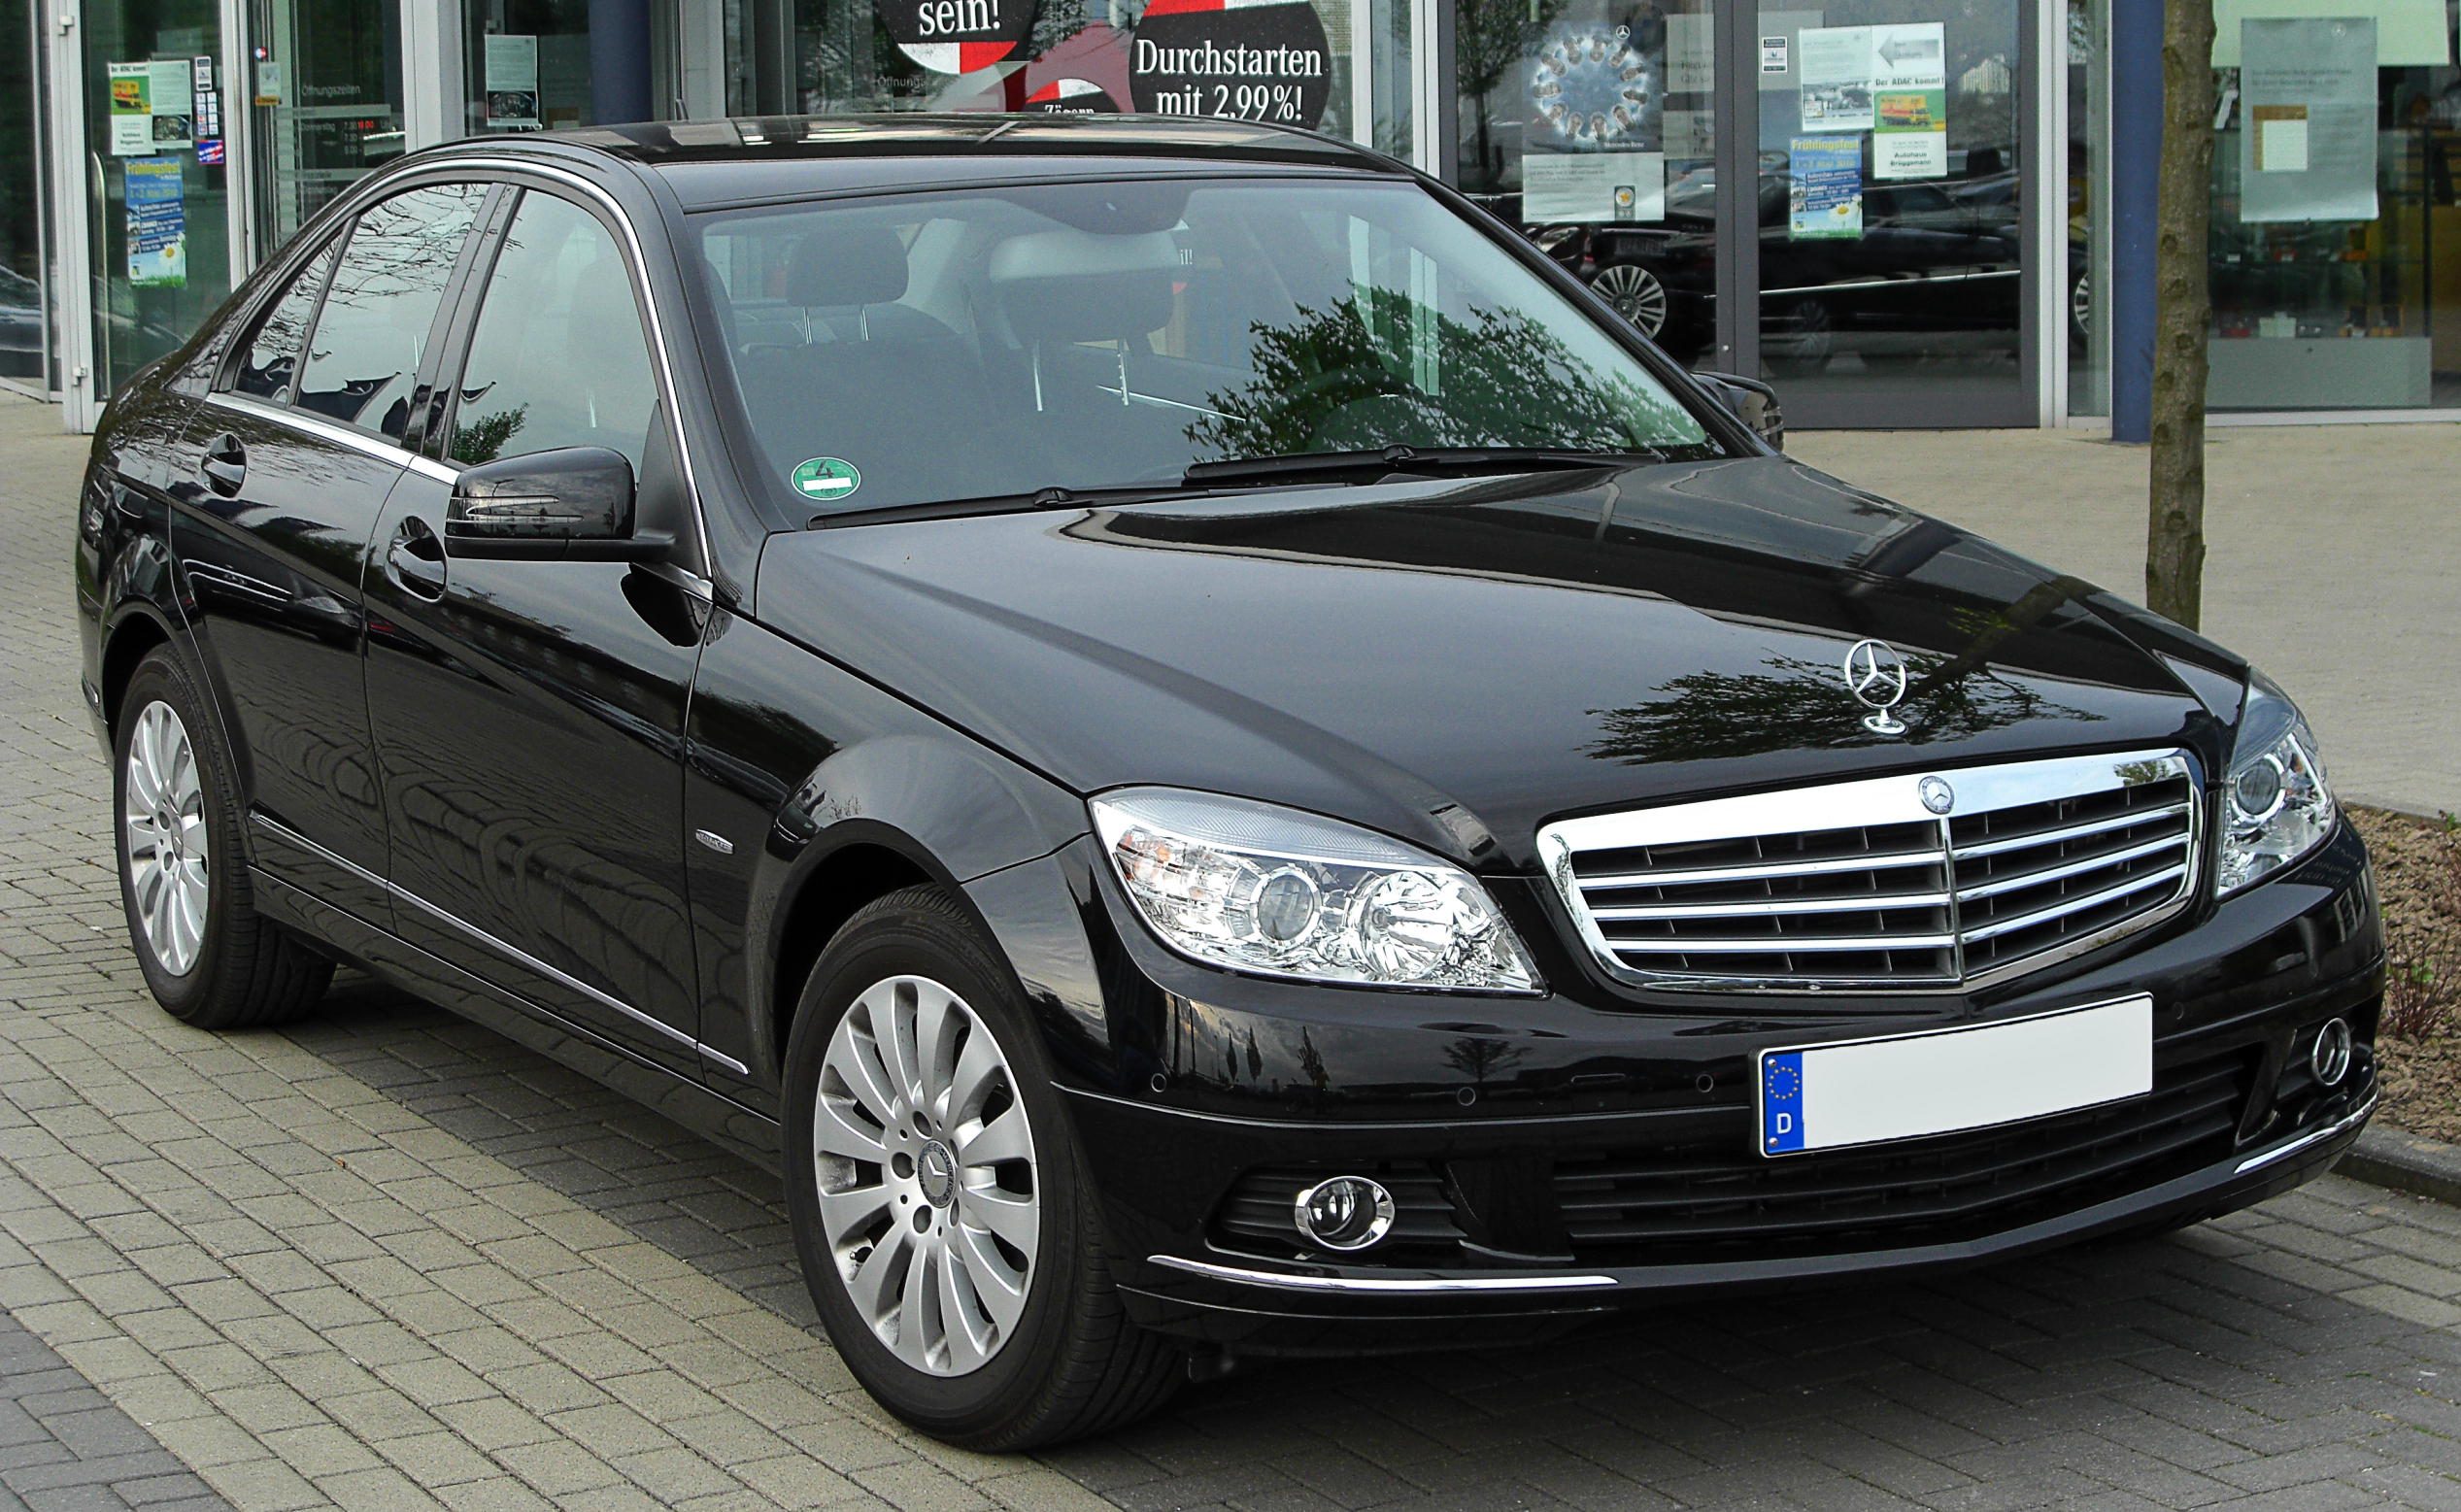 mercedes c200 w204 wiki. Black Bedroom Furniture Sets. Home Design Ideas